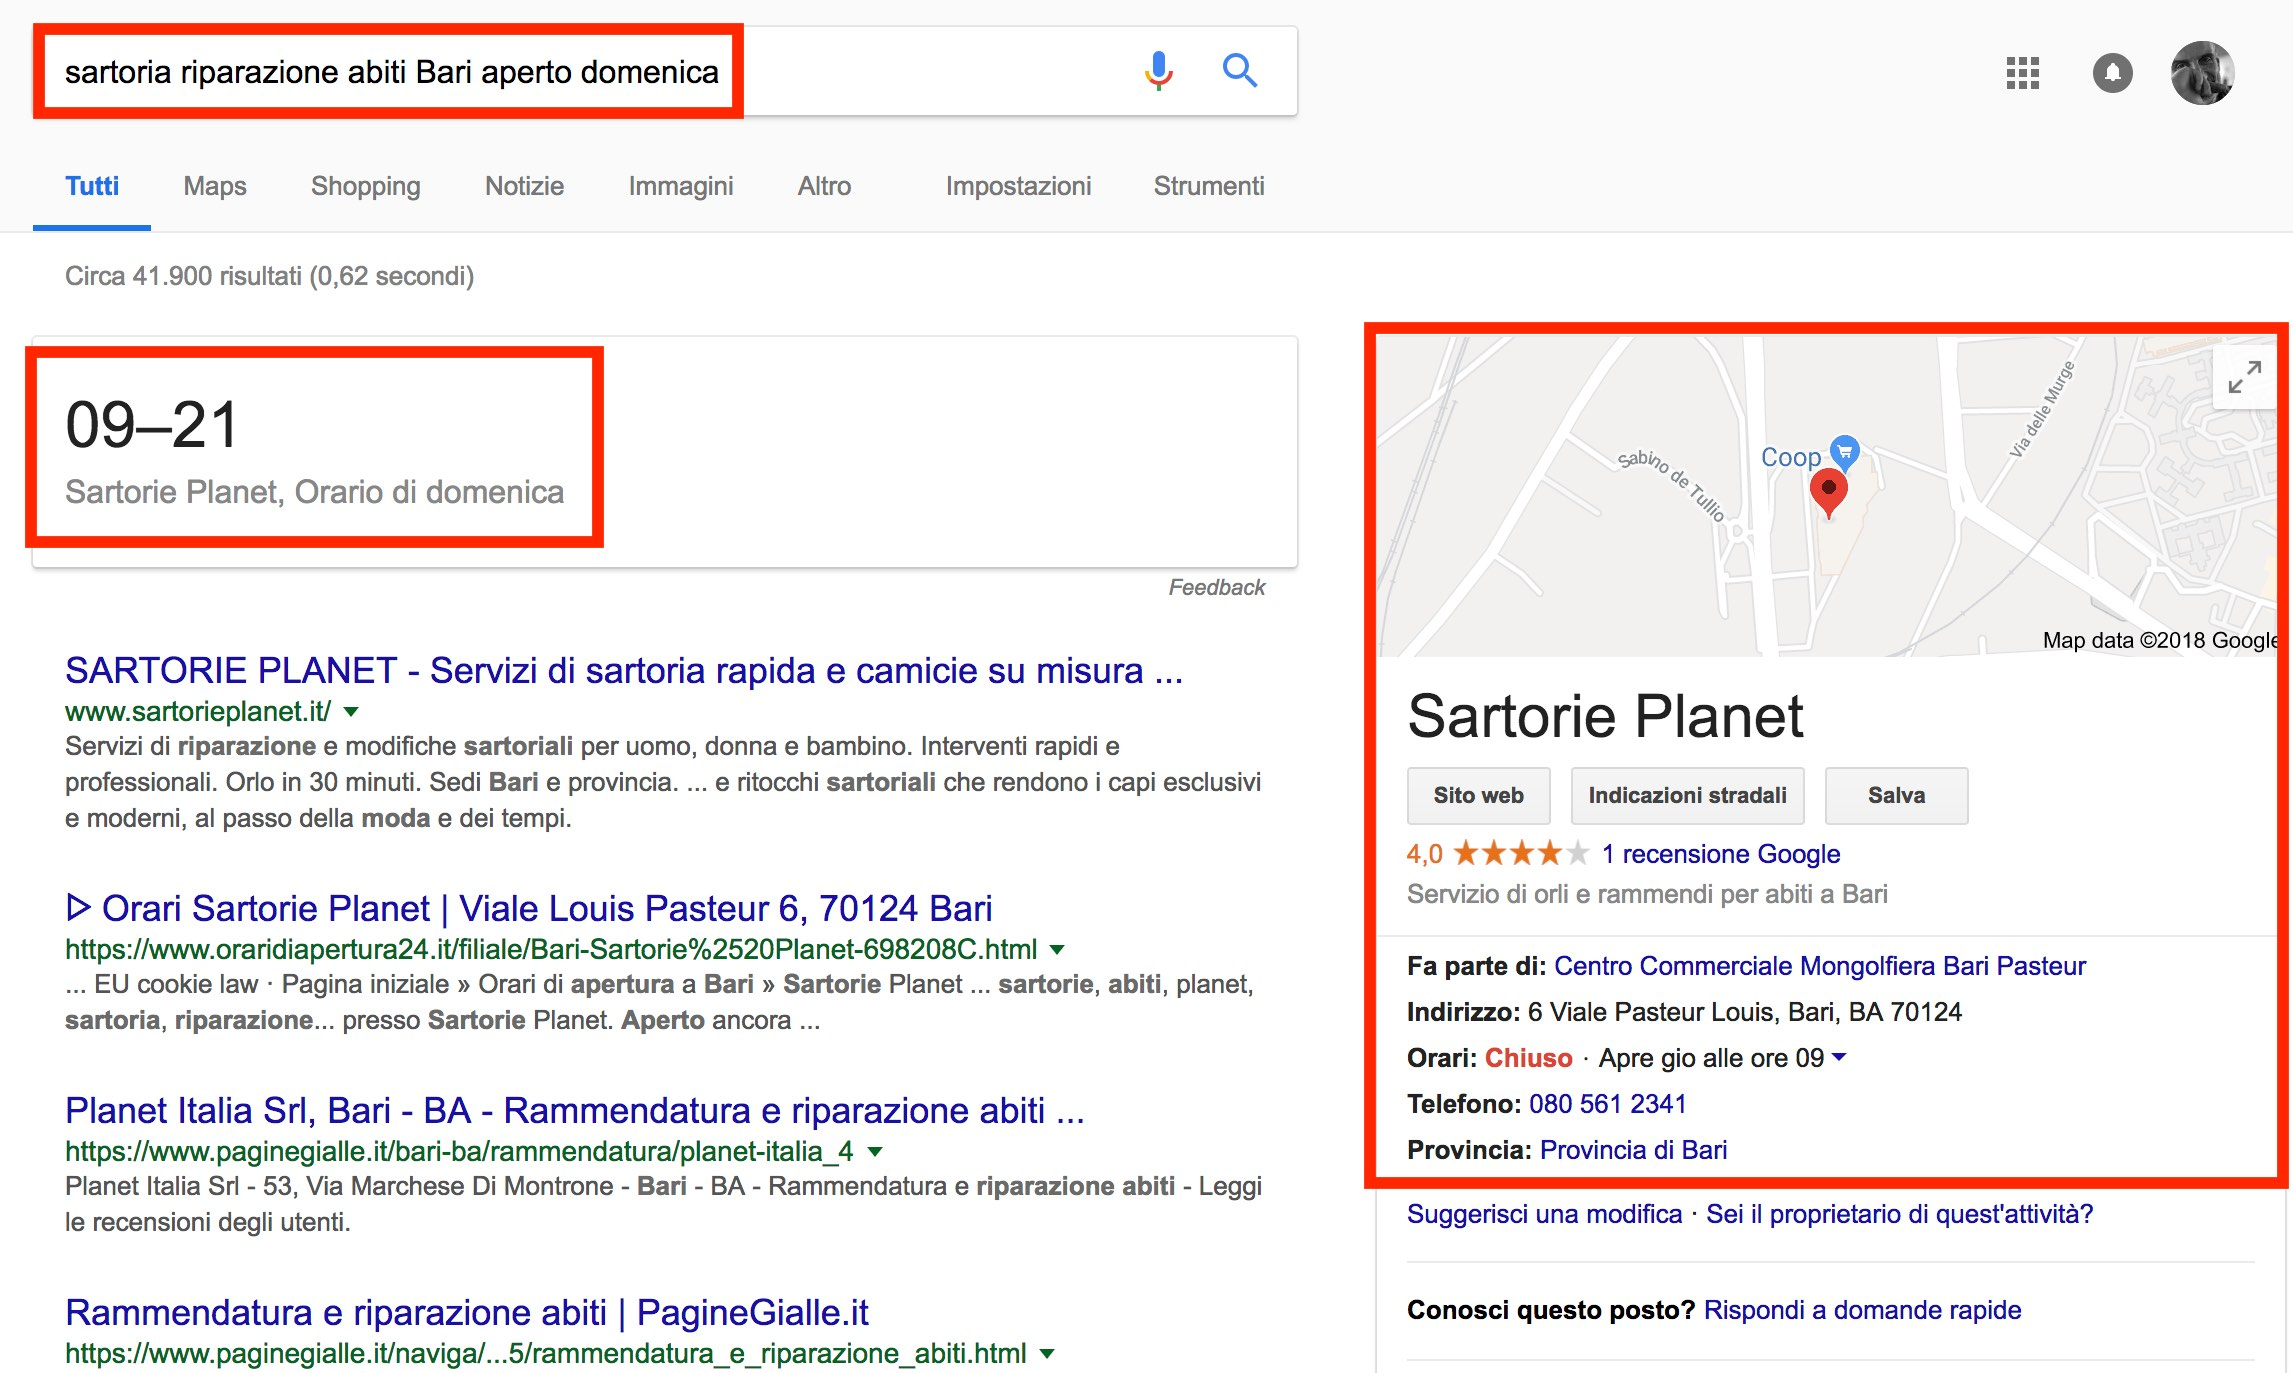 Google My Business: ricerche con intento di acquisto urgente